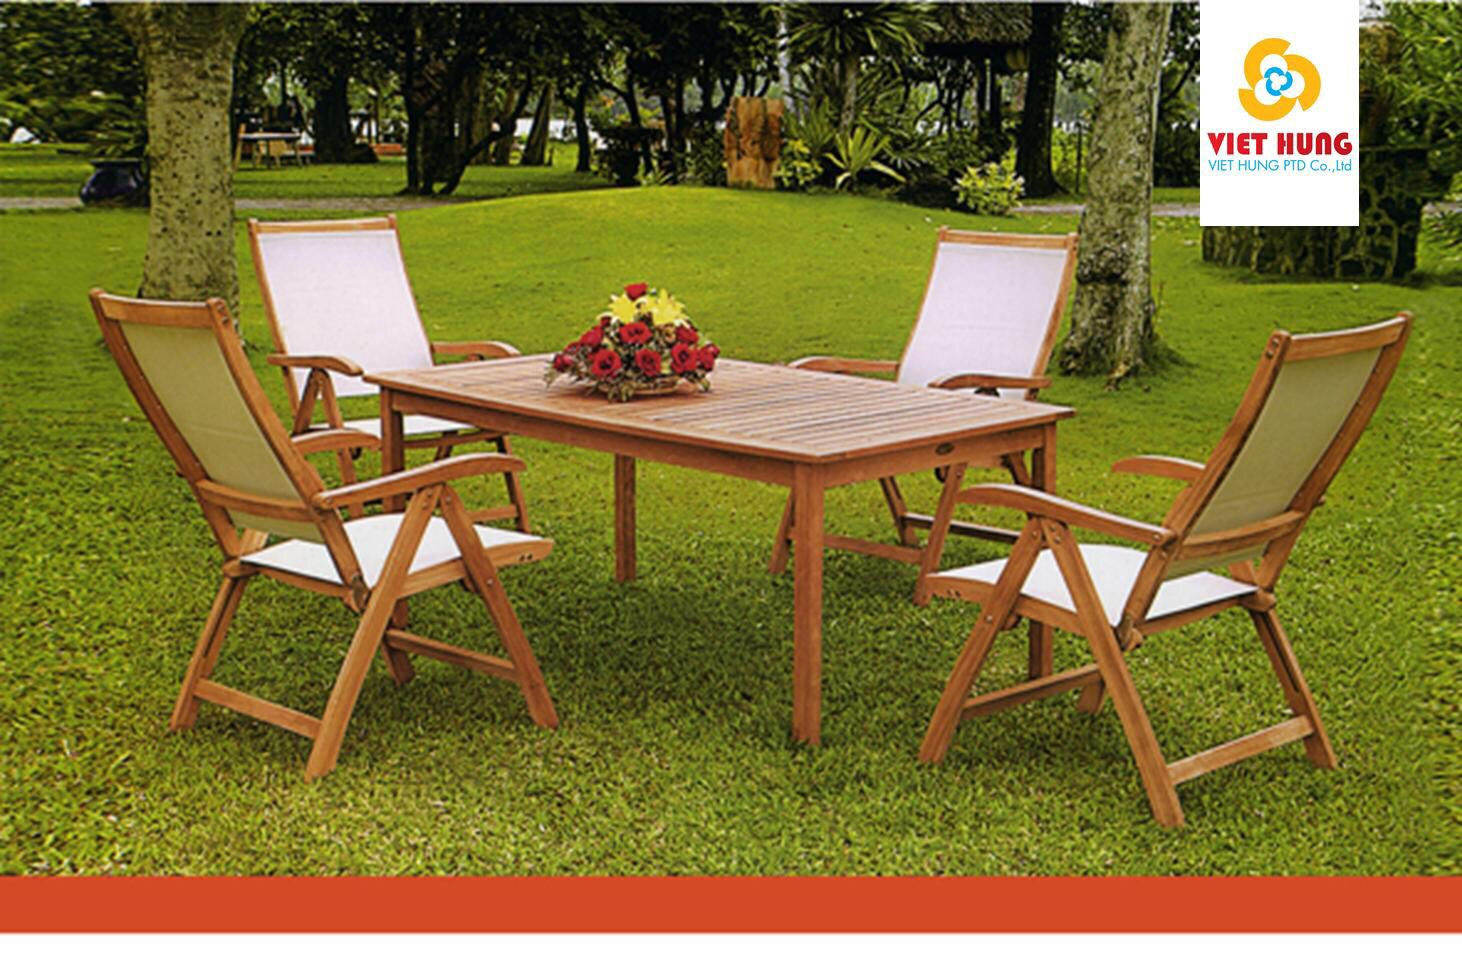 Manufacturing indoor outdoor furniture in vietnam we have been producing quality furniture for over